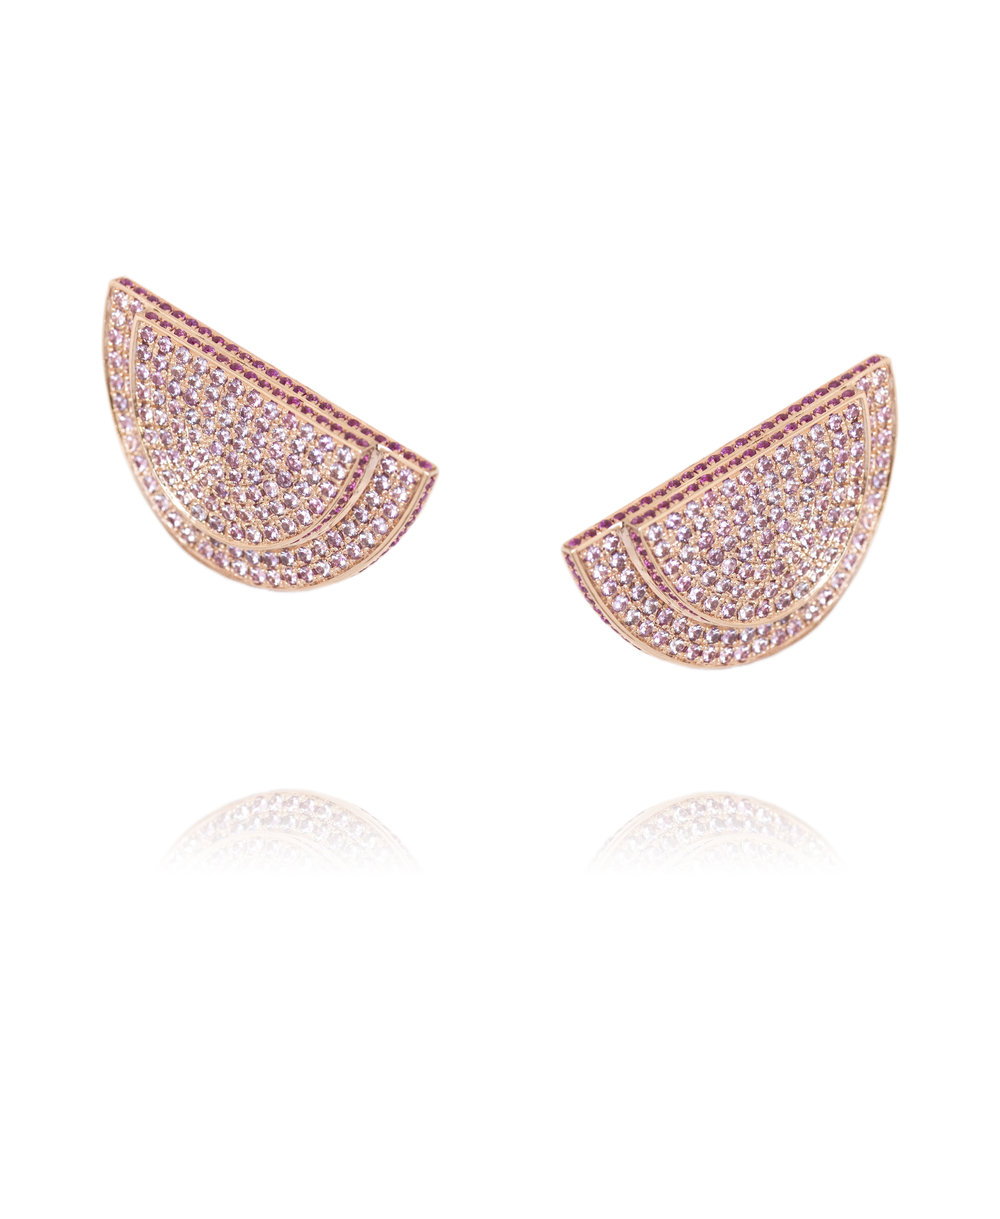 Earrings  18KT Rose Gold, Pink Sapphires  REF. MOD266